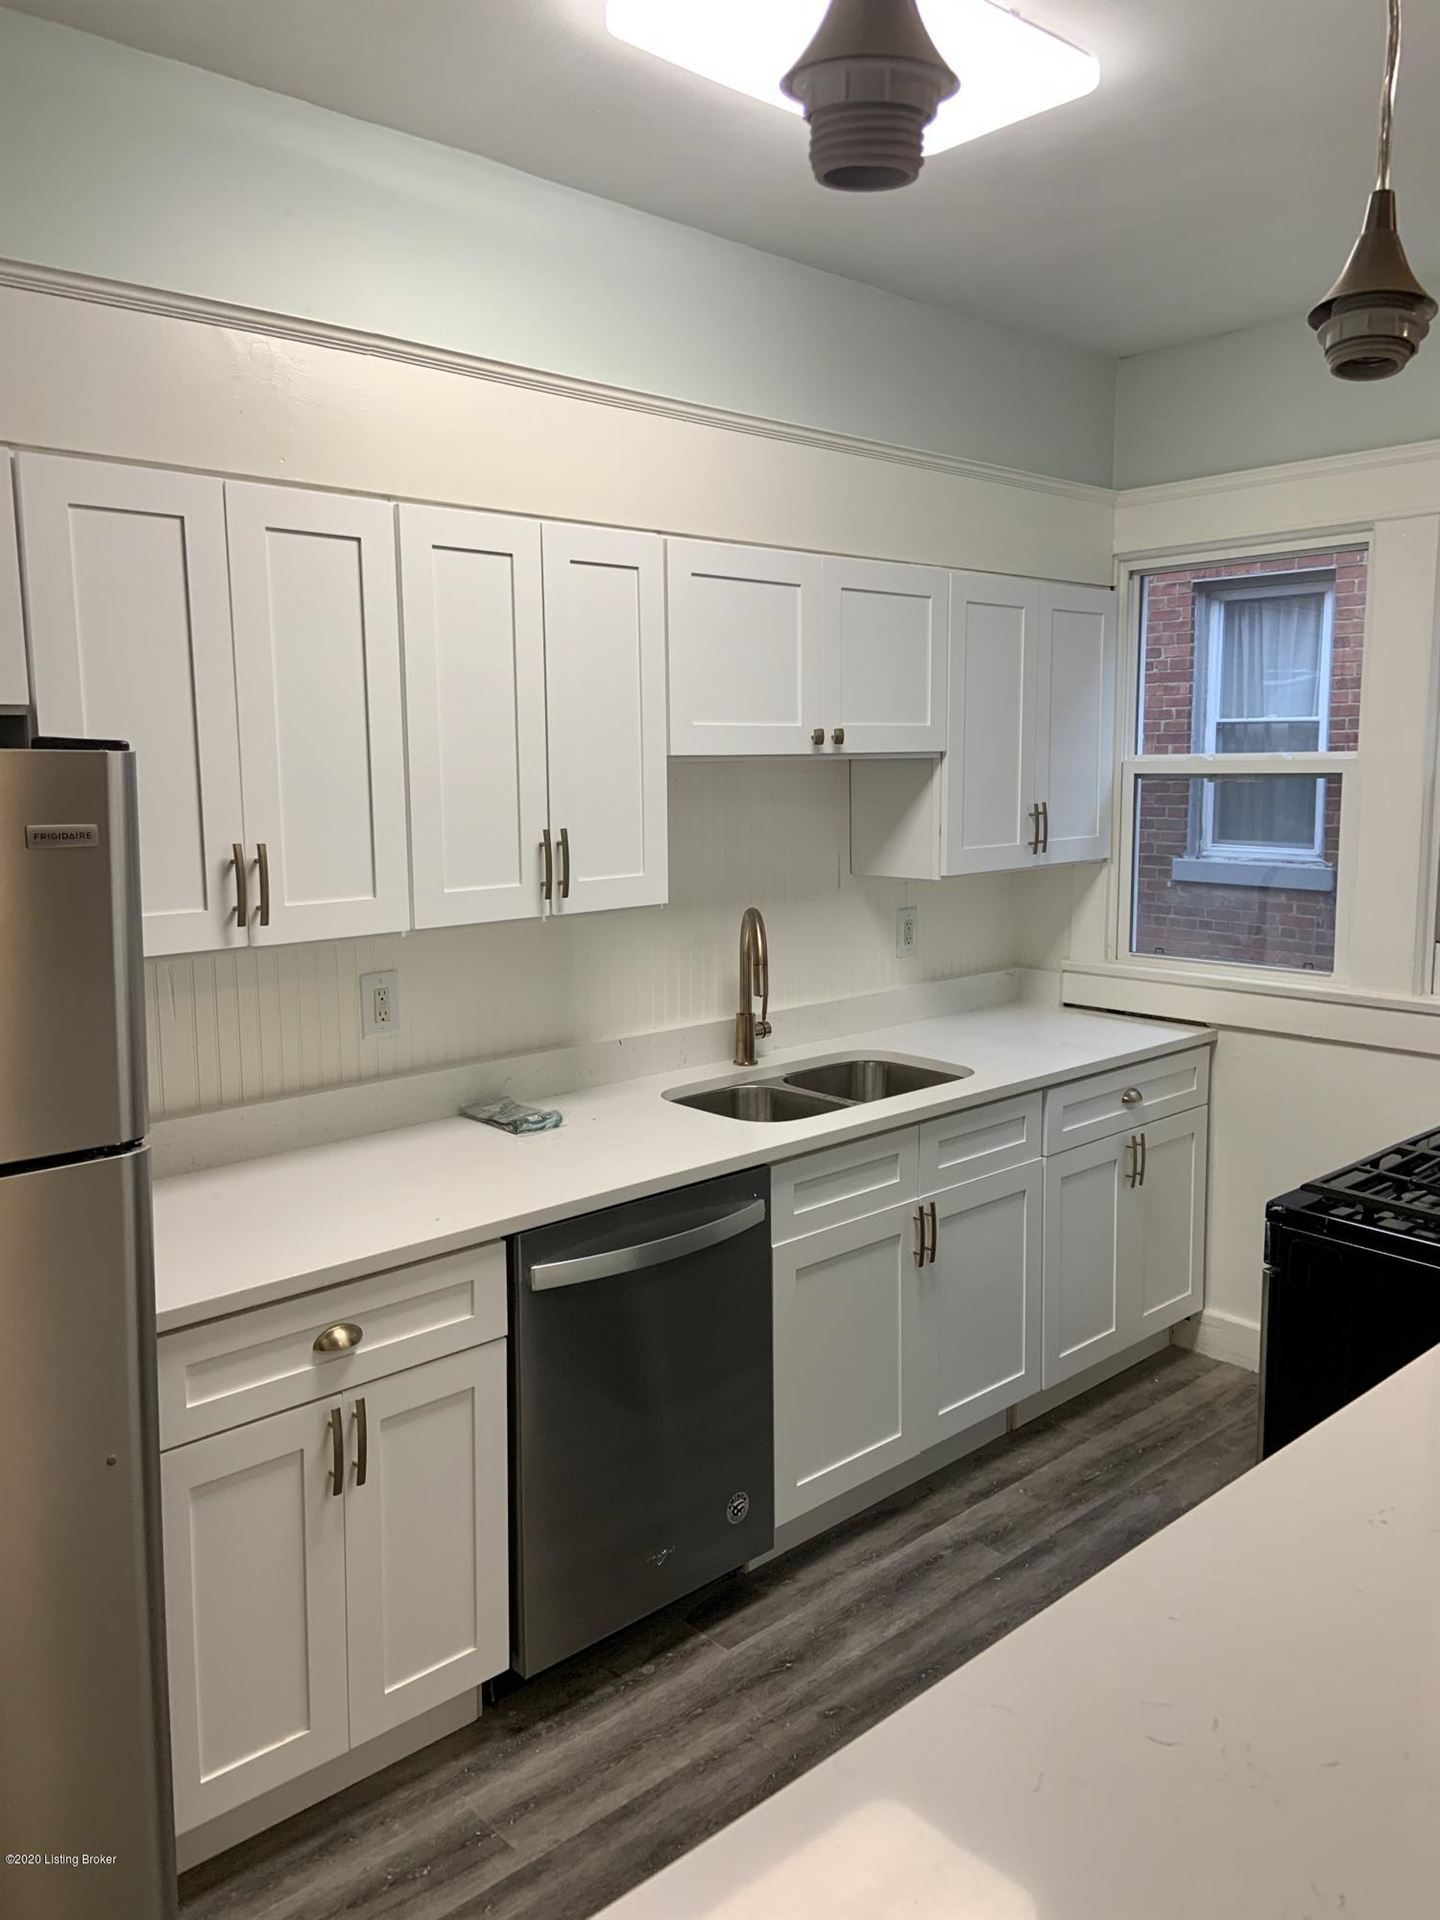 Photo for 1312 Barret Ave #2, Louisville, KY 40204 (MLS # 1584438)